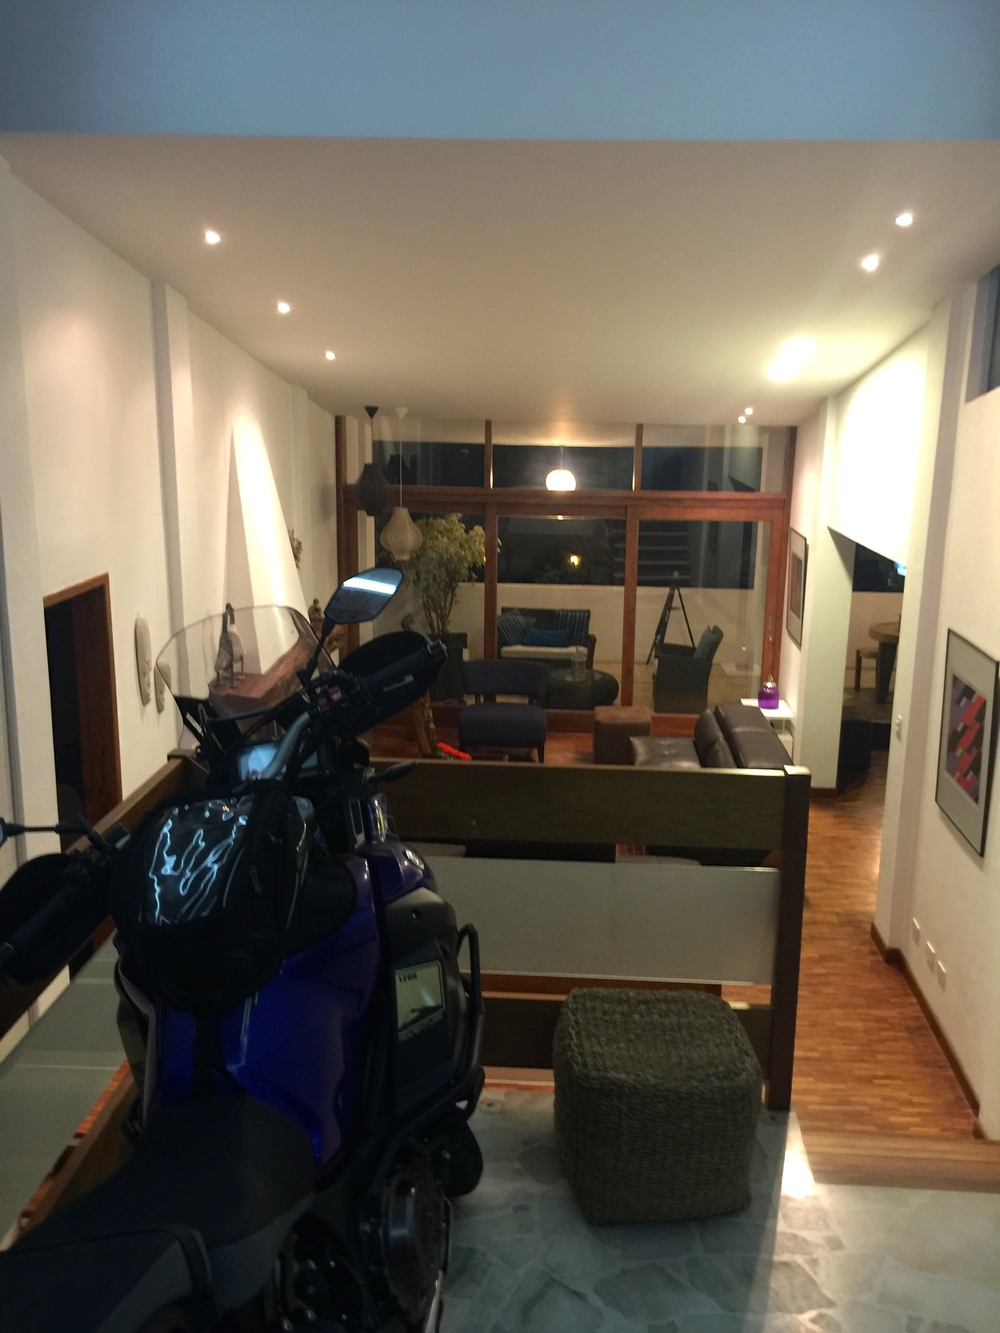 Felipe  made room in his garage for our bikes by moving his bike into the house. Very cool.